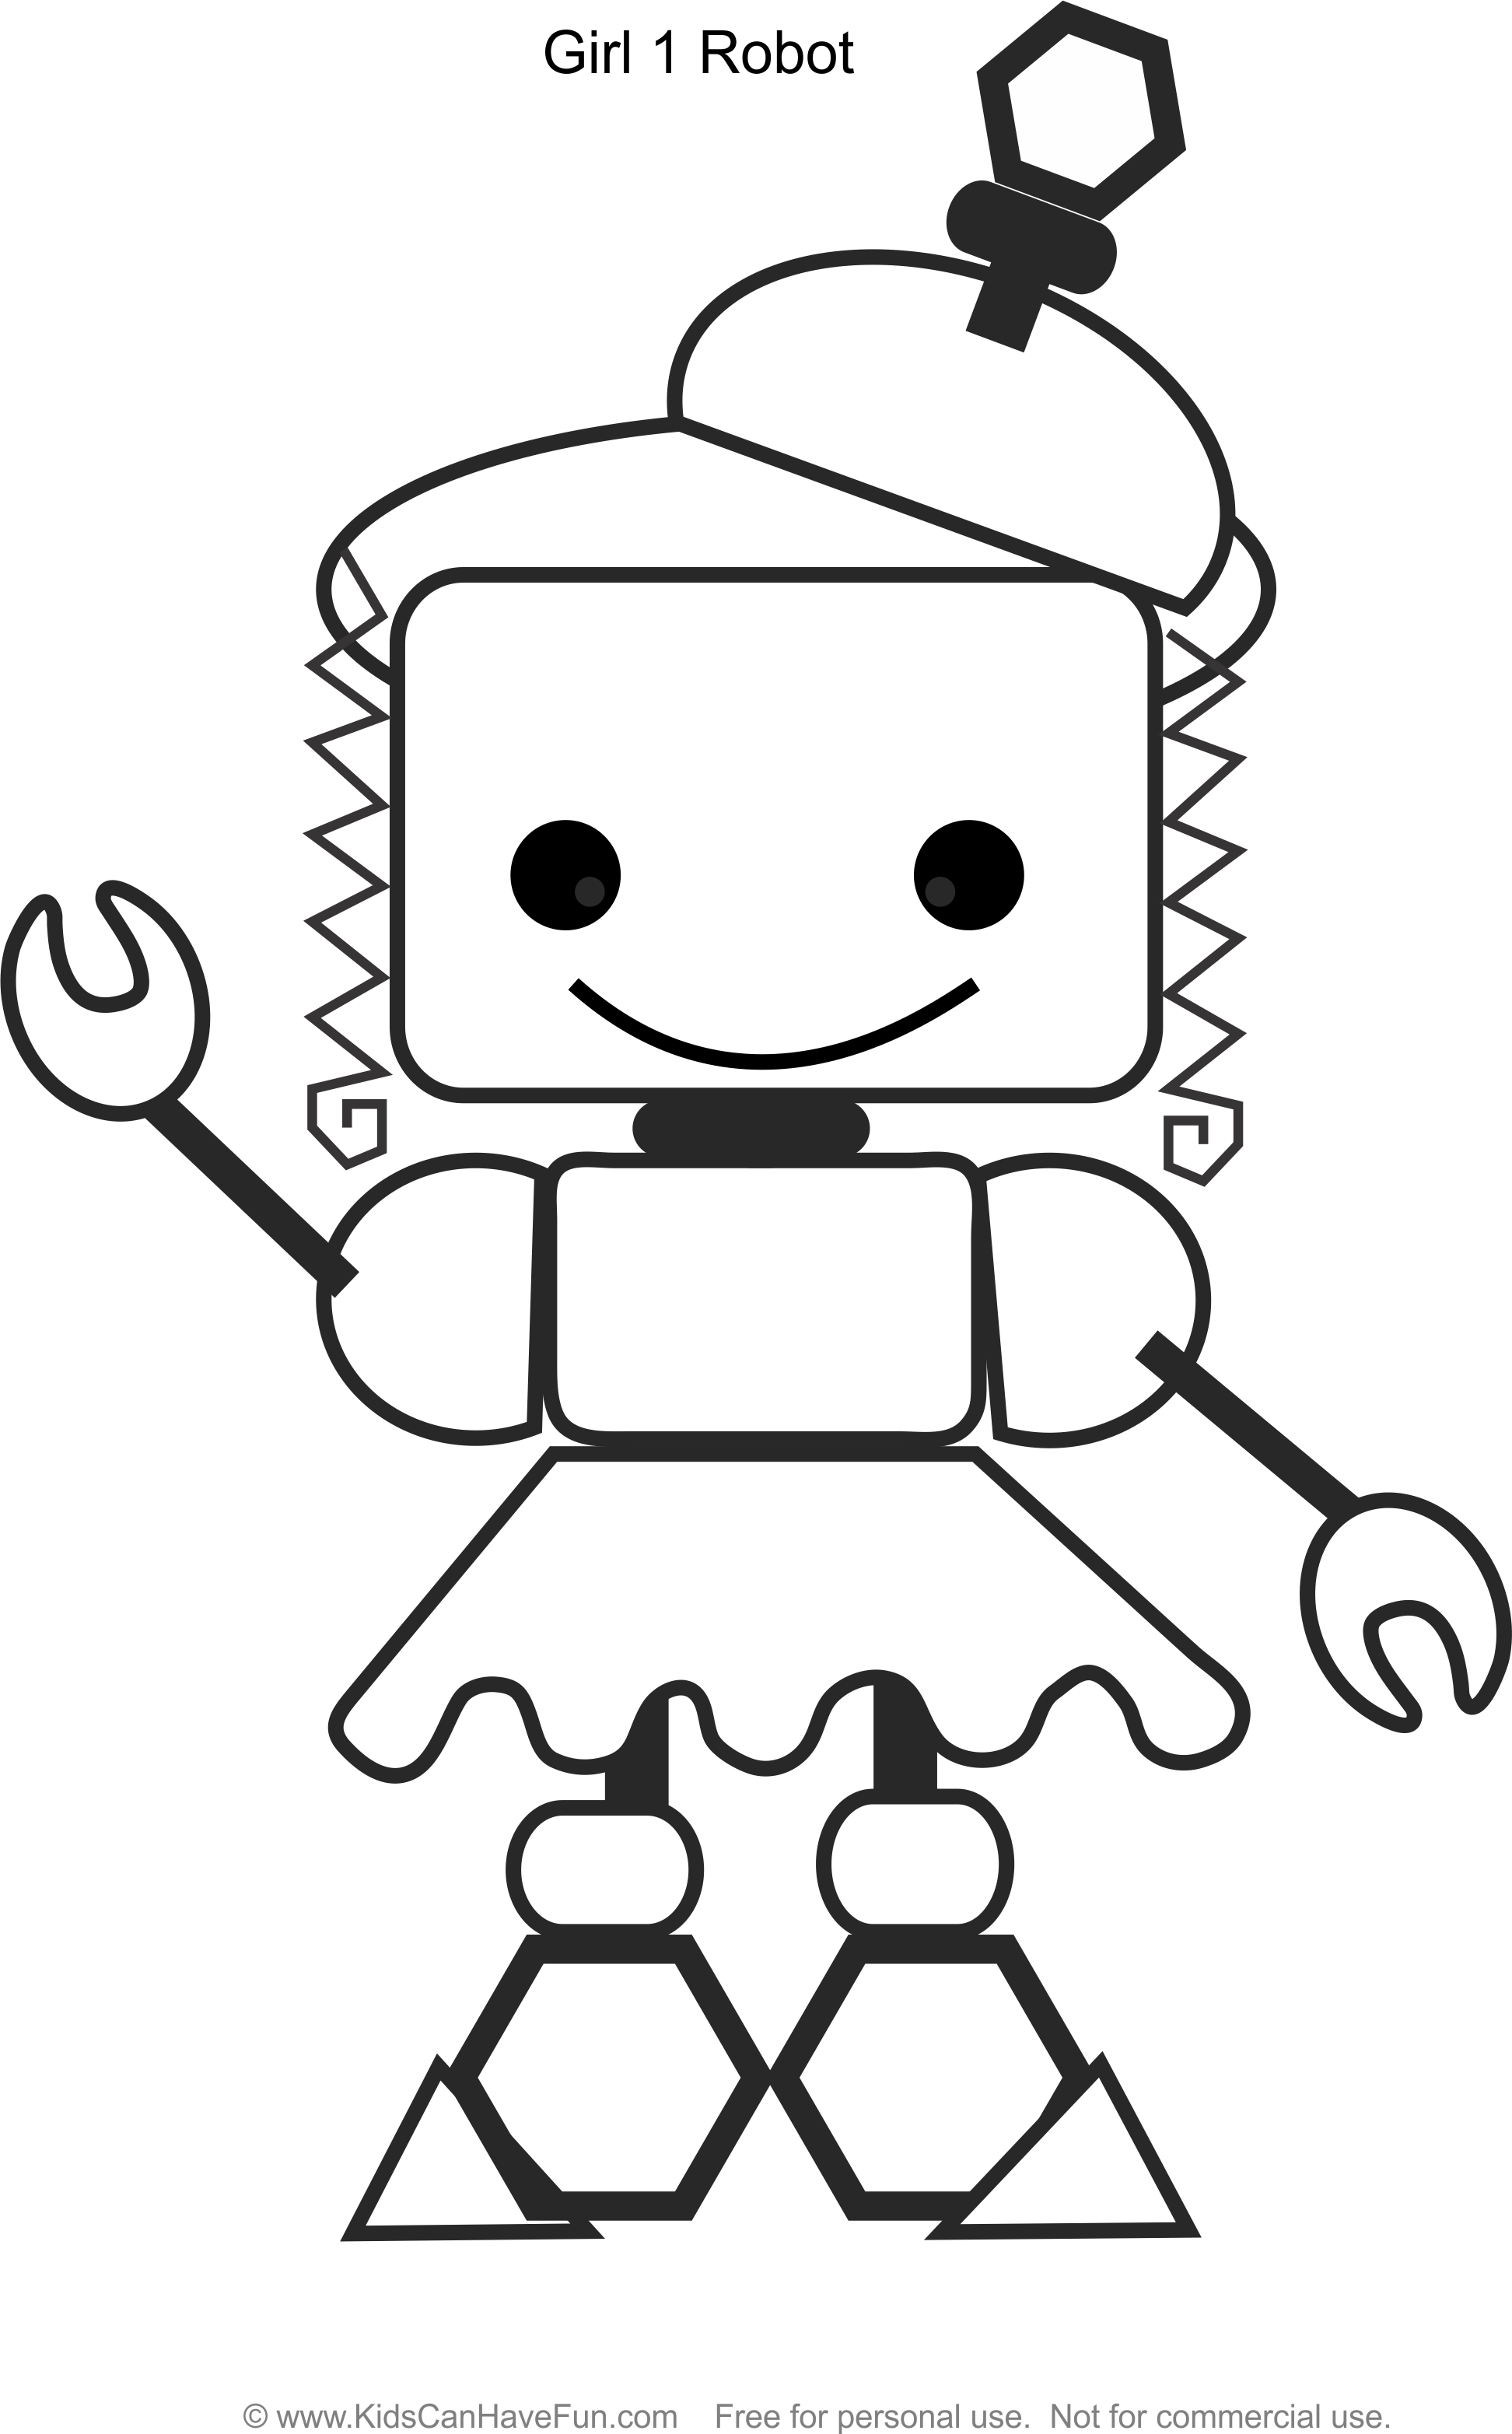 girl robot coloring pages free printable robot girl coloring page pages coloring girl robot